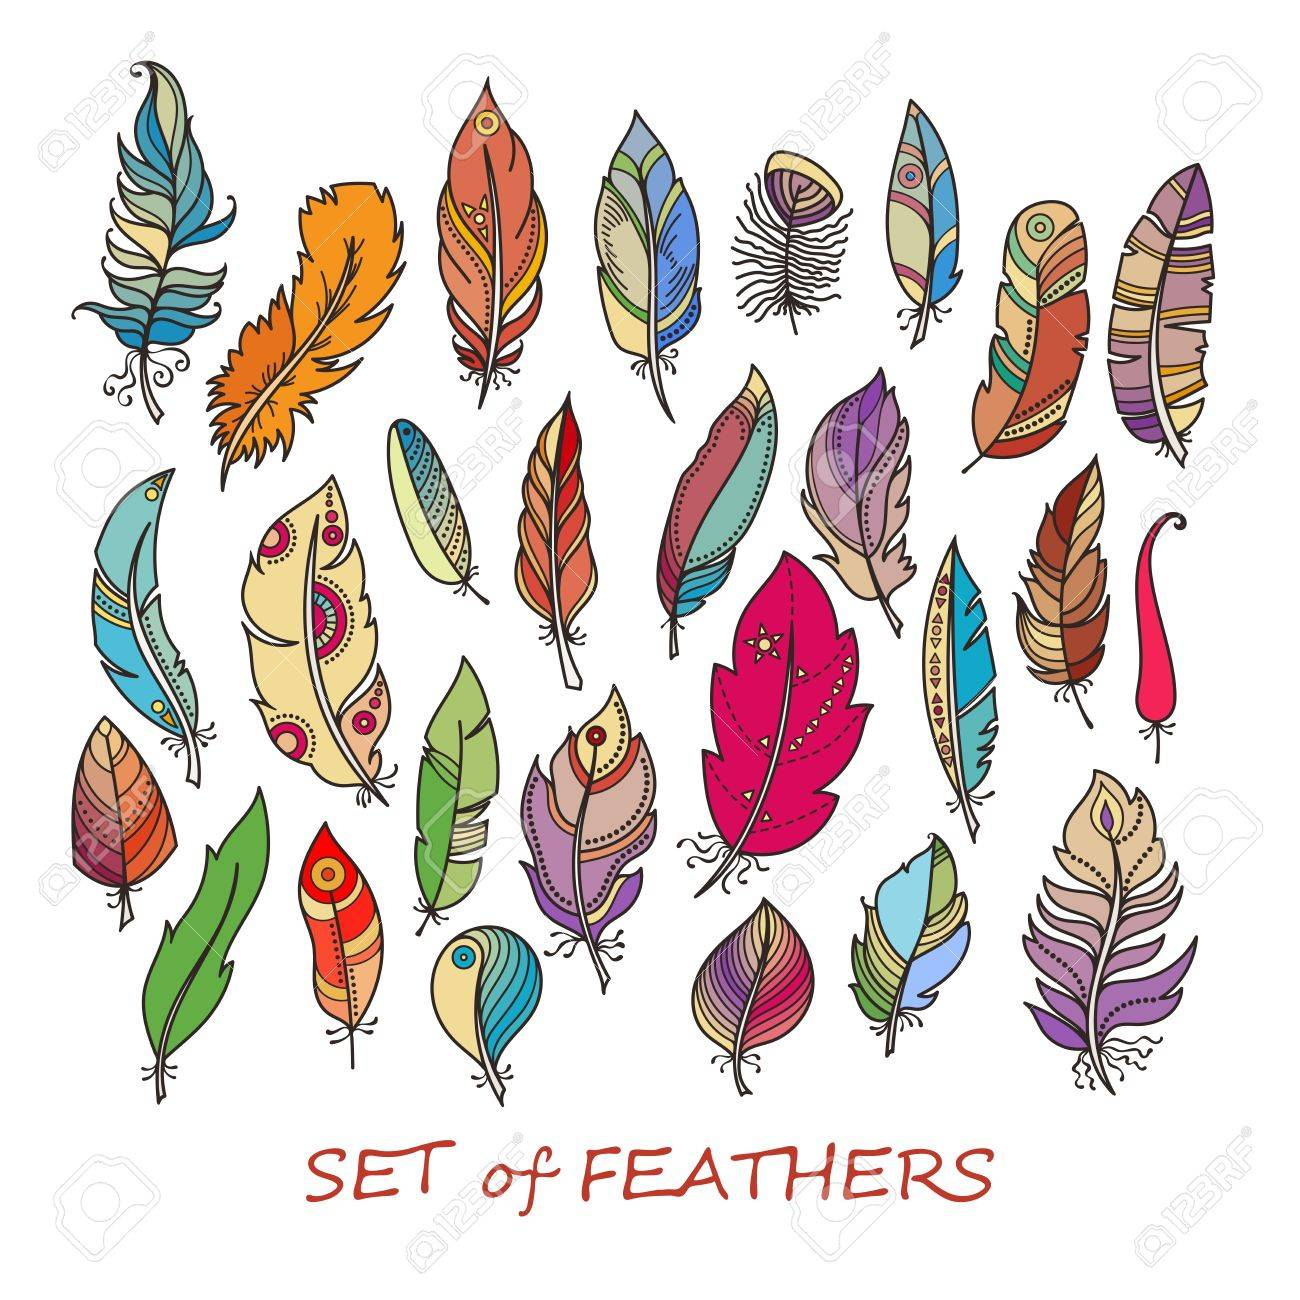 ornate set of stylized and abstract feathers elements for design and coloring pages